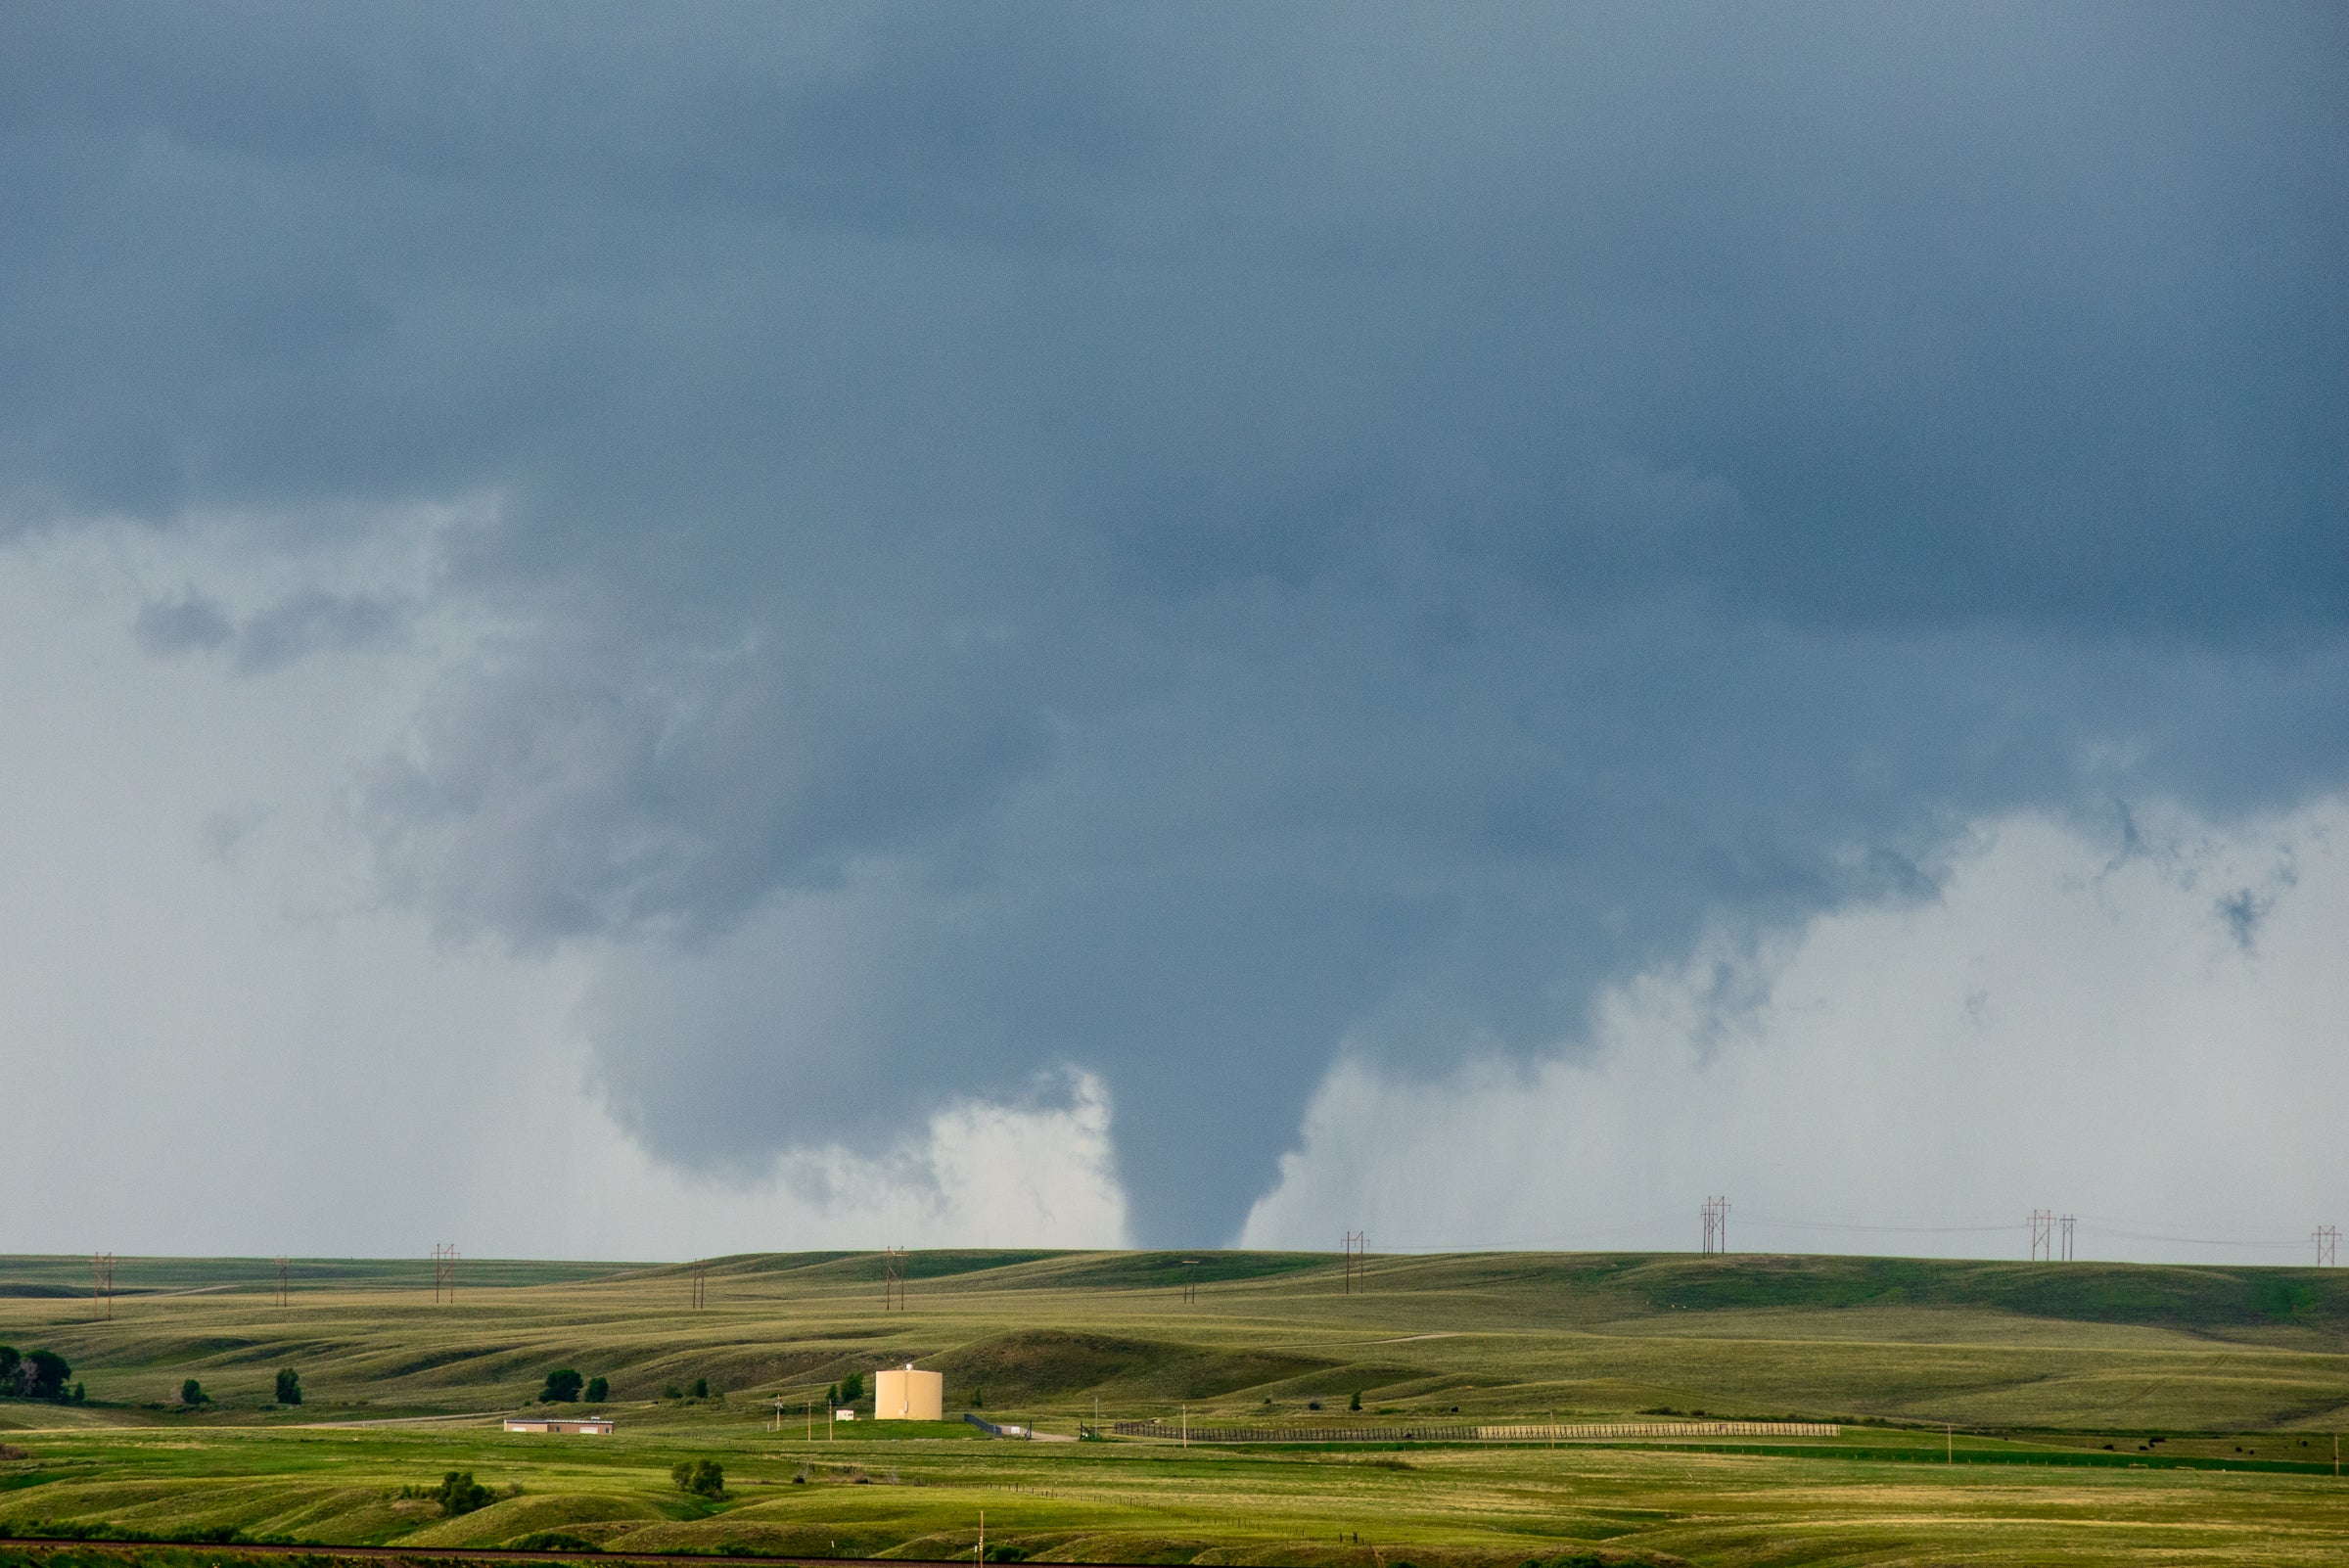 Tornado outbreaks in the United States are on the rise